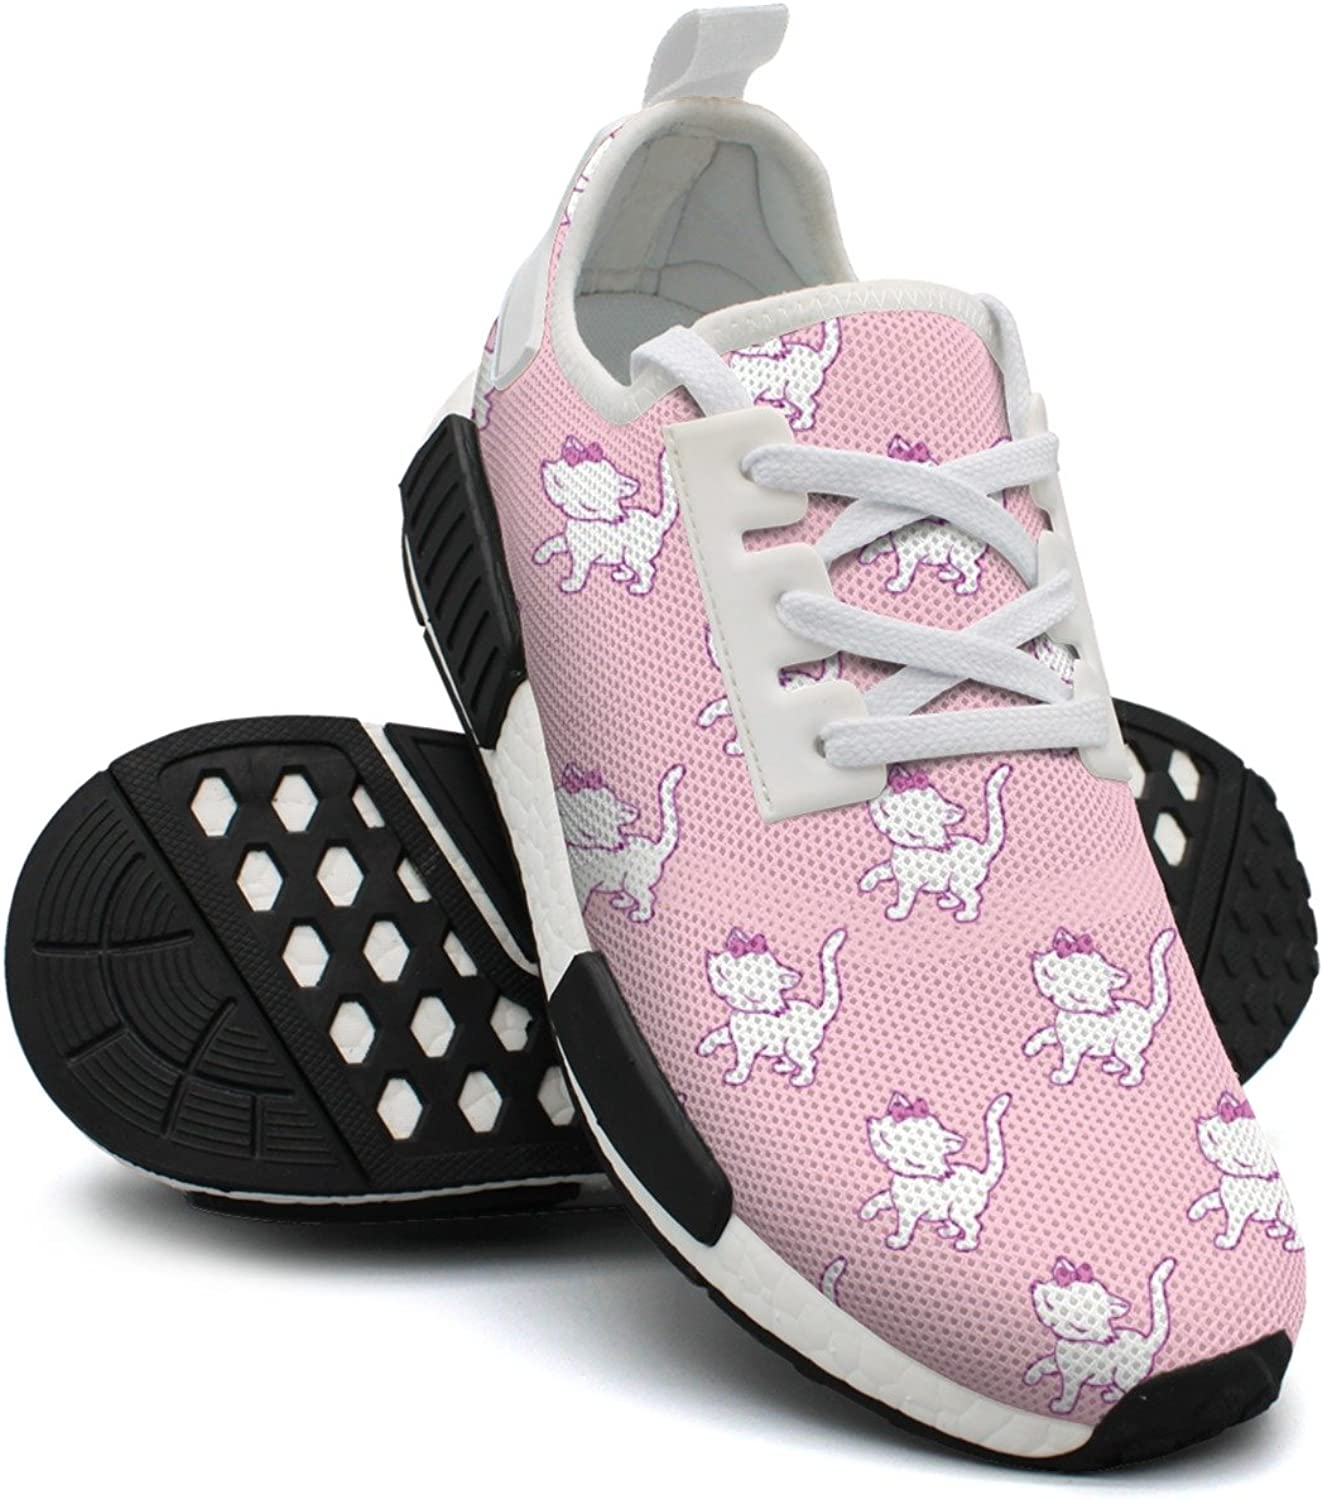 Cute Kitten Cat Pink Background Women's Unique Lightweight Basketball Sneakers Gym Outdoor Running shoes